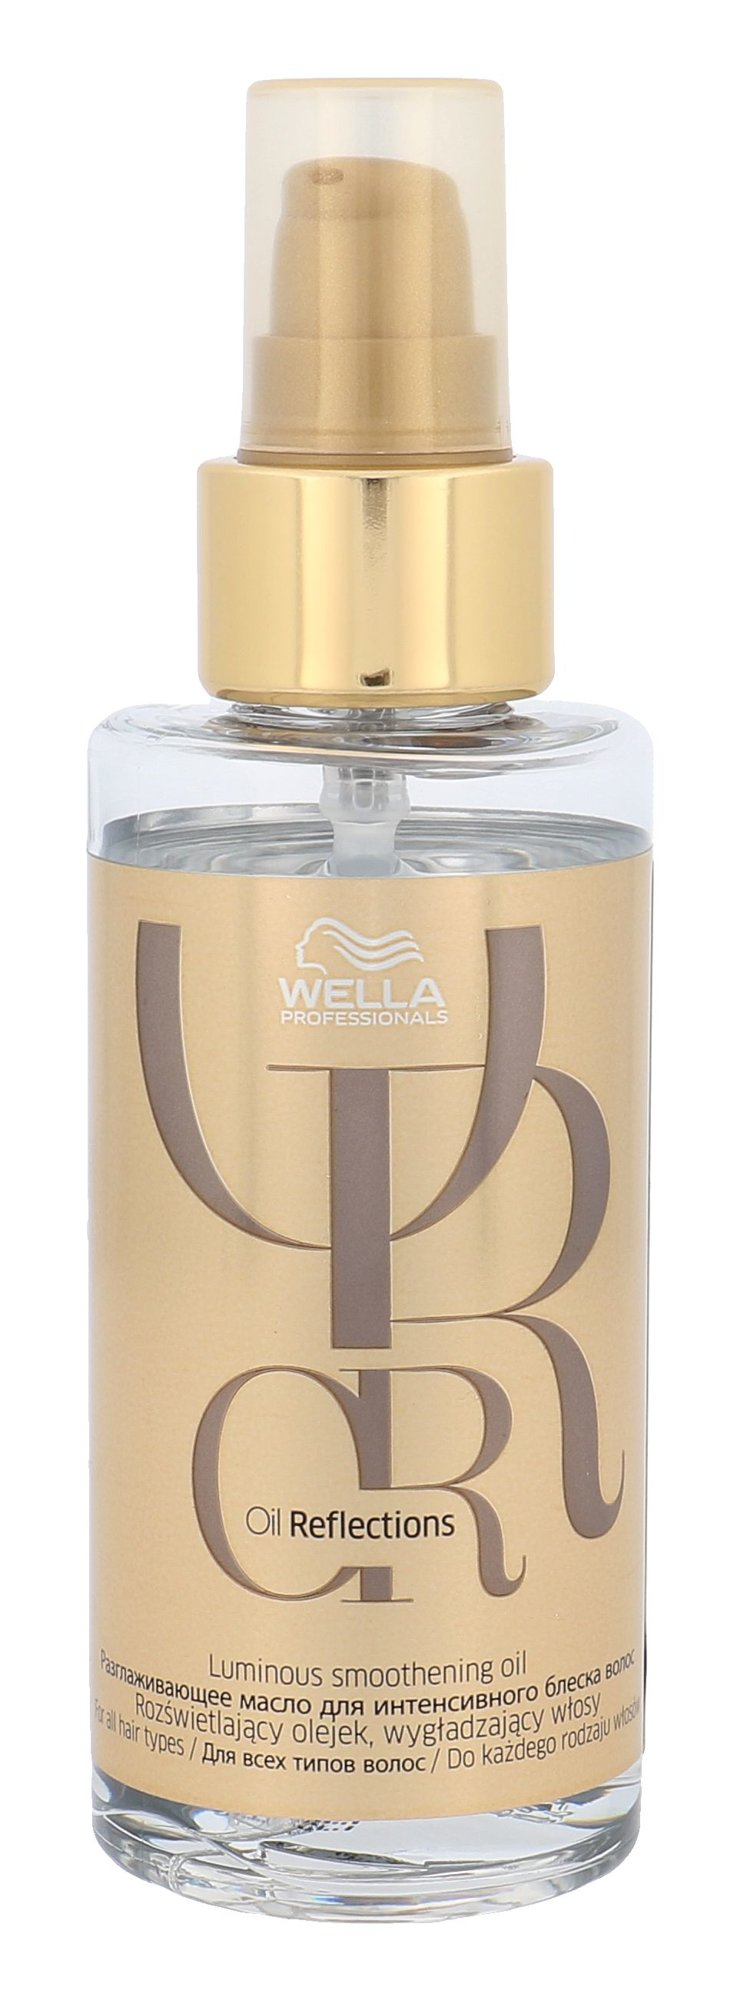 Wella Oil Reflections Luminous Smoothening Oil Cosmetic 100ml